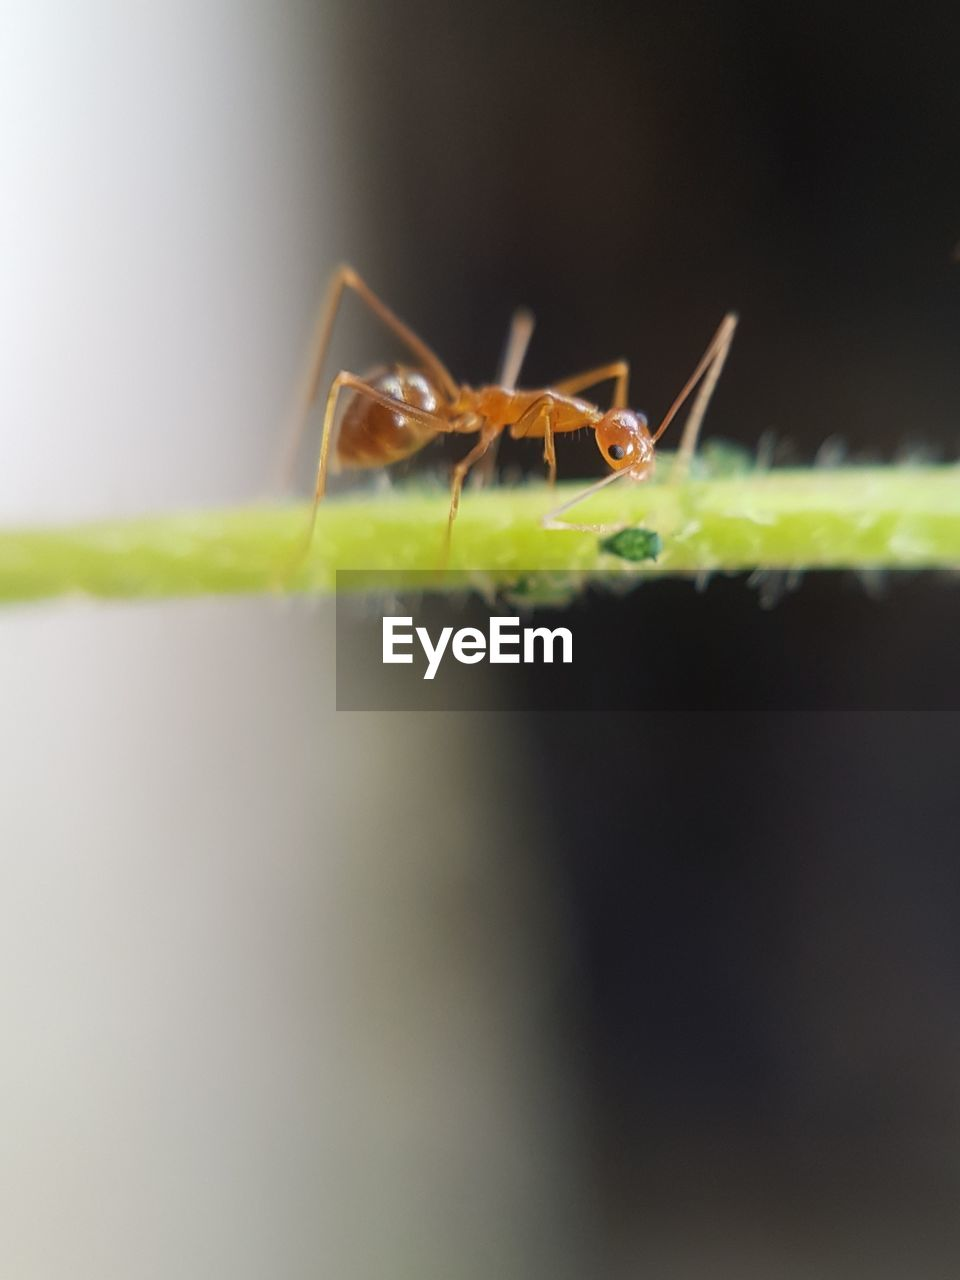 insect, invertebrate, animals in the wild, animal wildlife, animal, selective focus, close-up, animal themes, one animal, green color, no people, nature, plant part, arthropod, leaf, day, zoology, animal body part, arachnid, outdoors